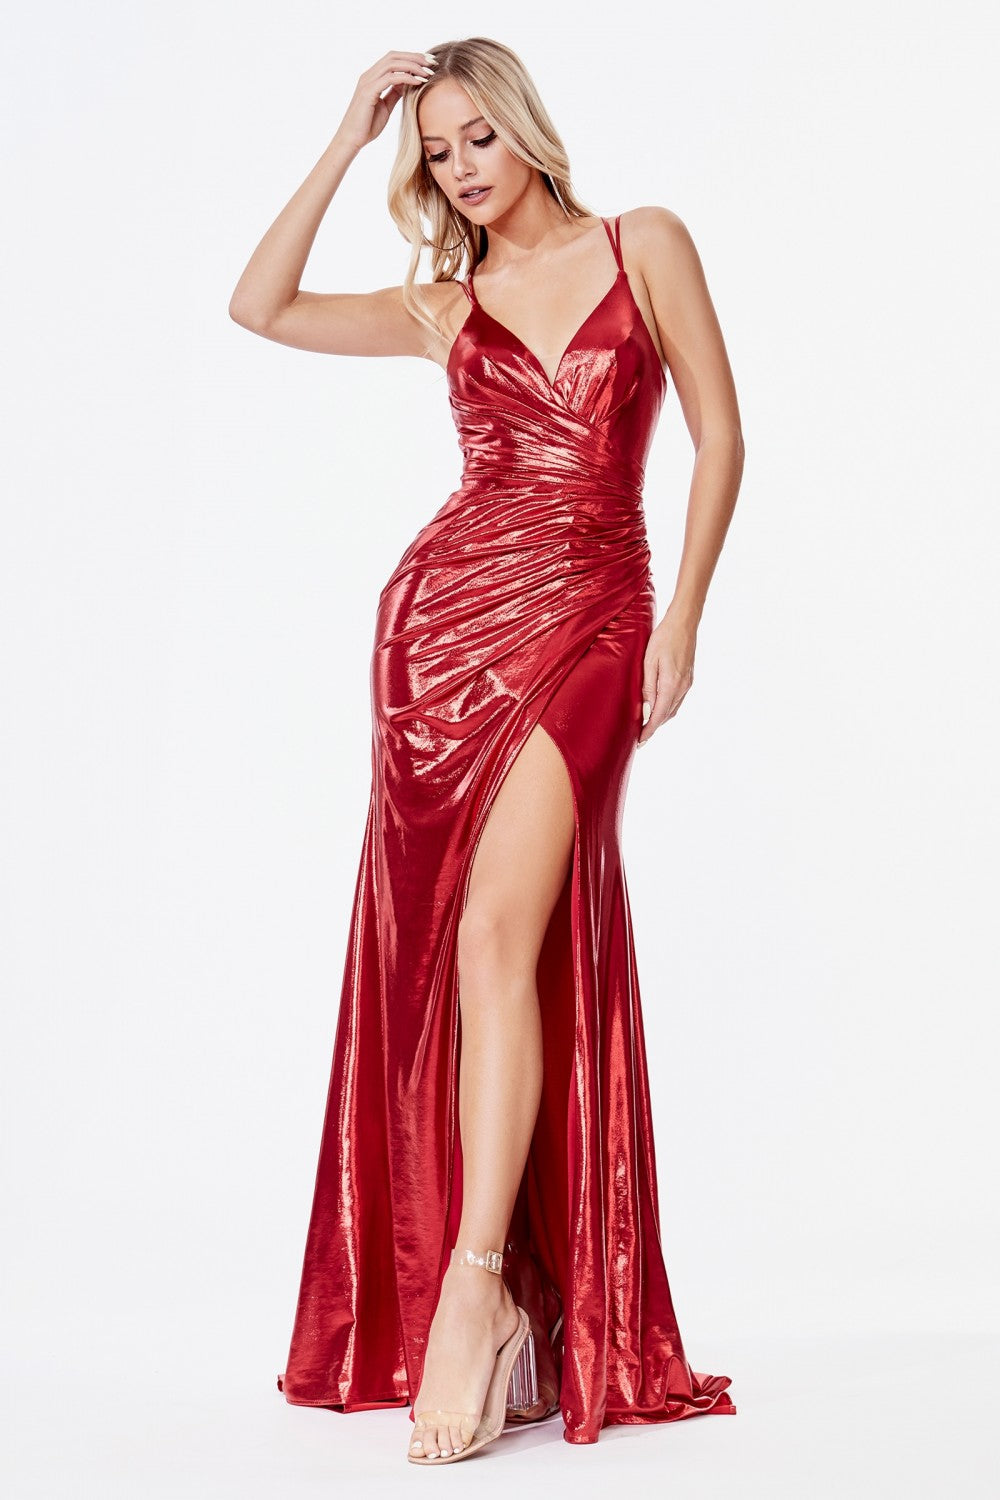 Cinderella Divine Chart I CD CD164 - Fitted Metallic Gown with Leg Slit and Gathered Waistline - Diggz Prom